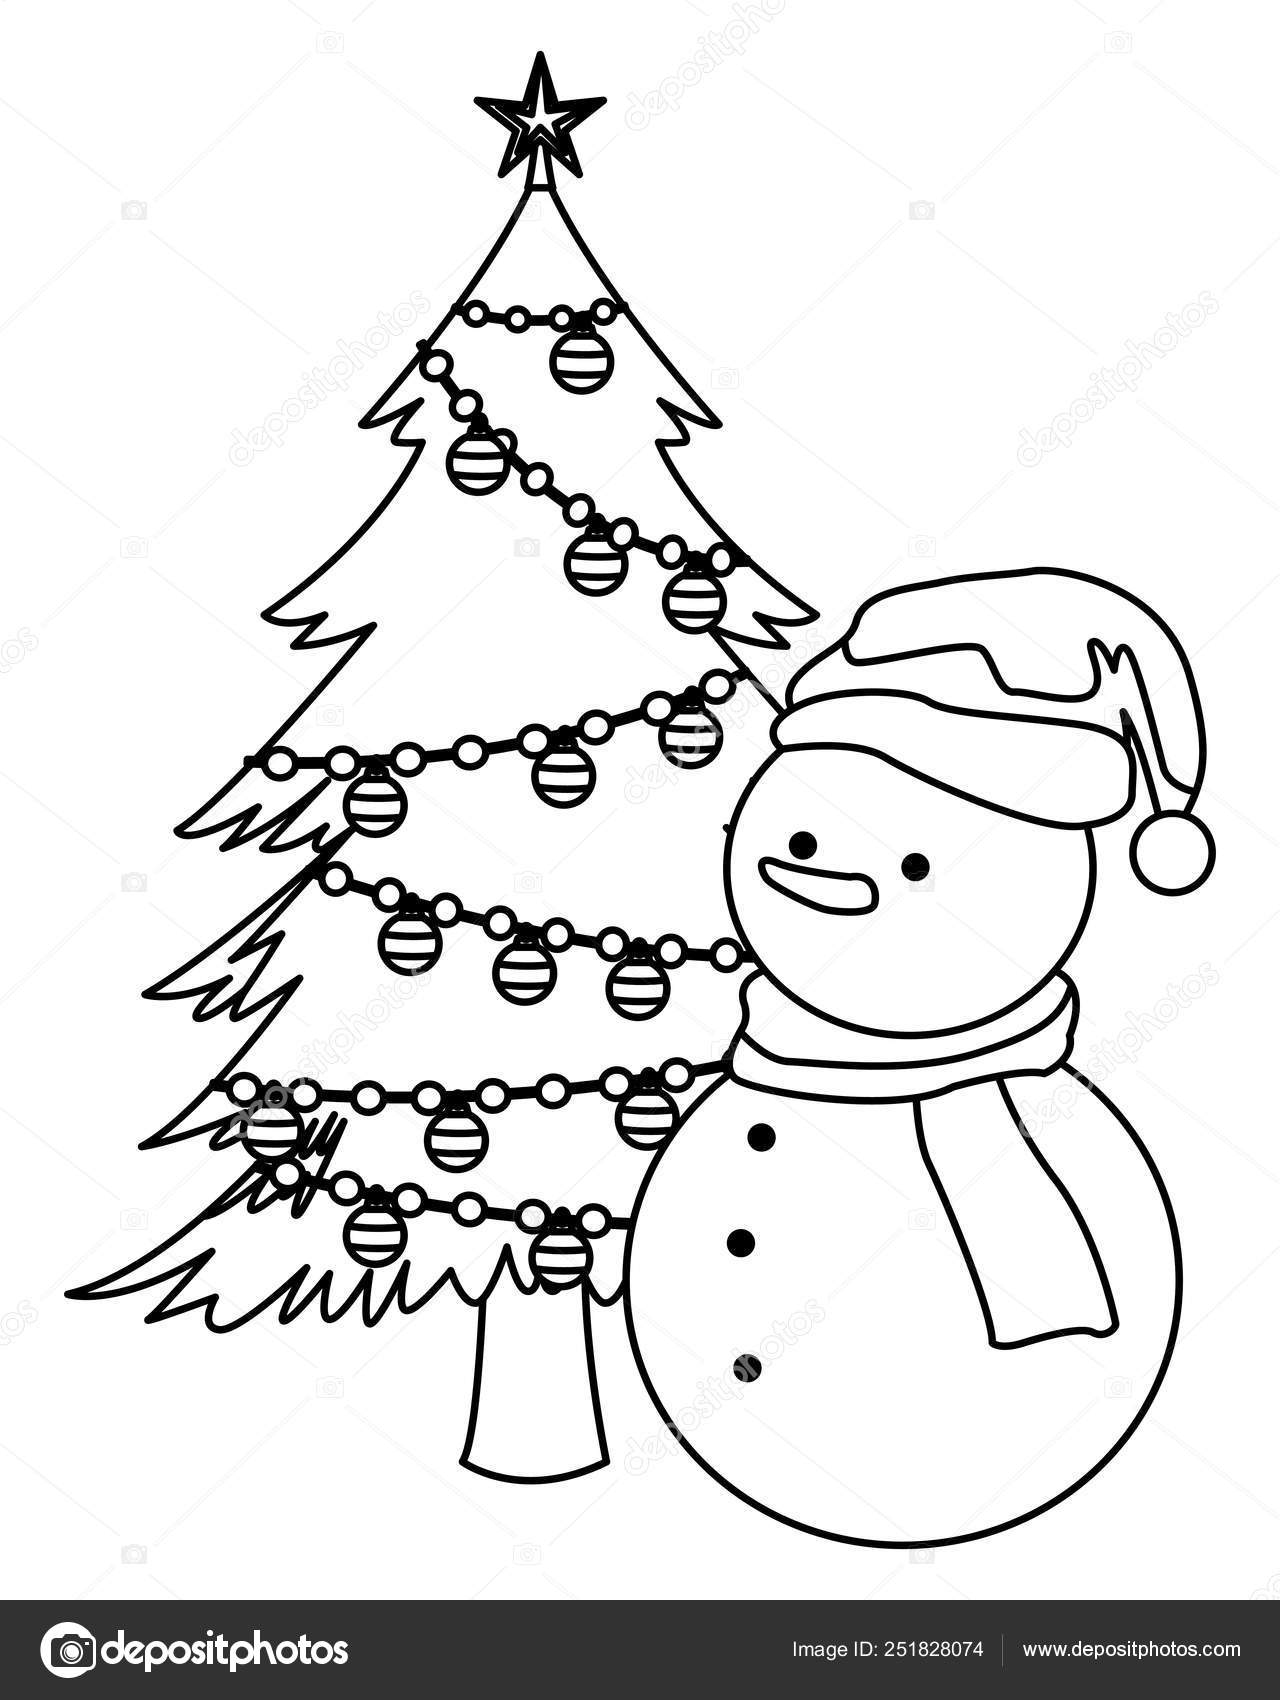 Snowman And Christmas Tree Black And White Stock Vector